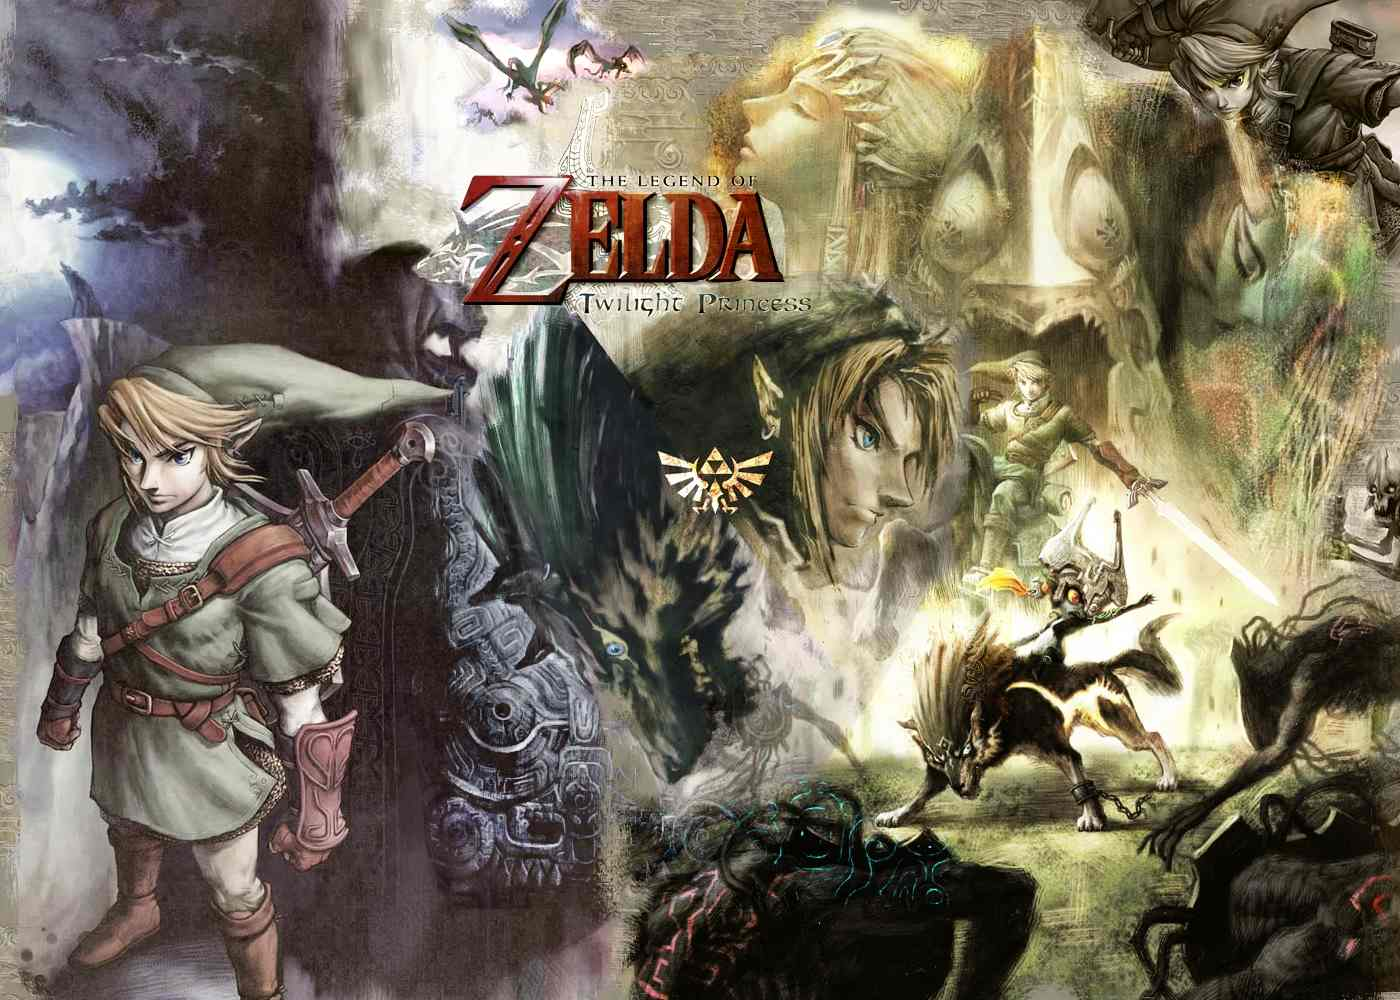 The Legend of Zelda Twilight Princess HD de Wii U será compatible con los periféricos de Wii